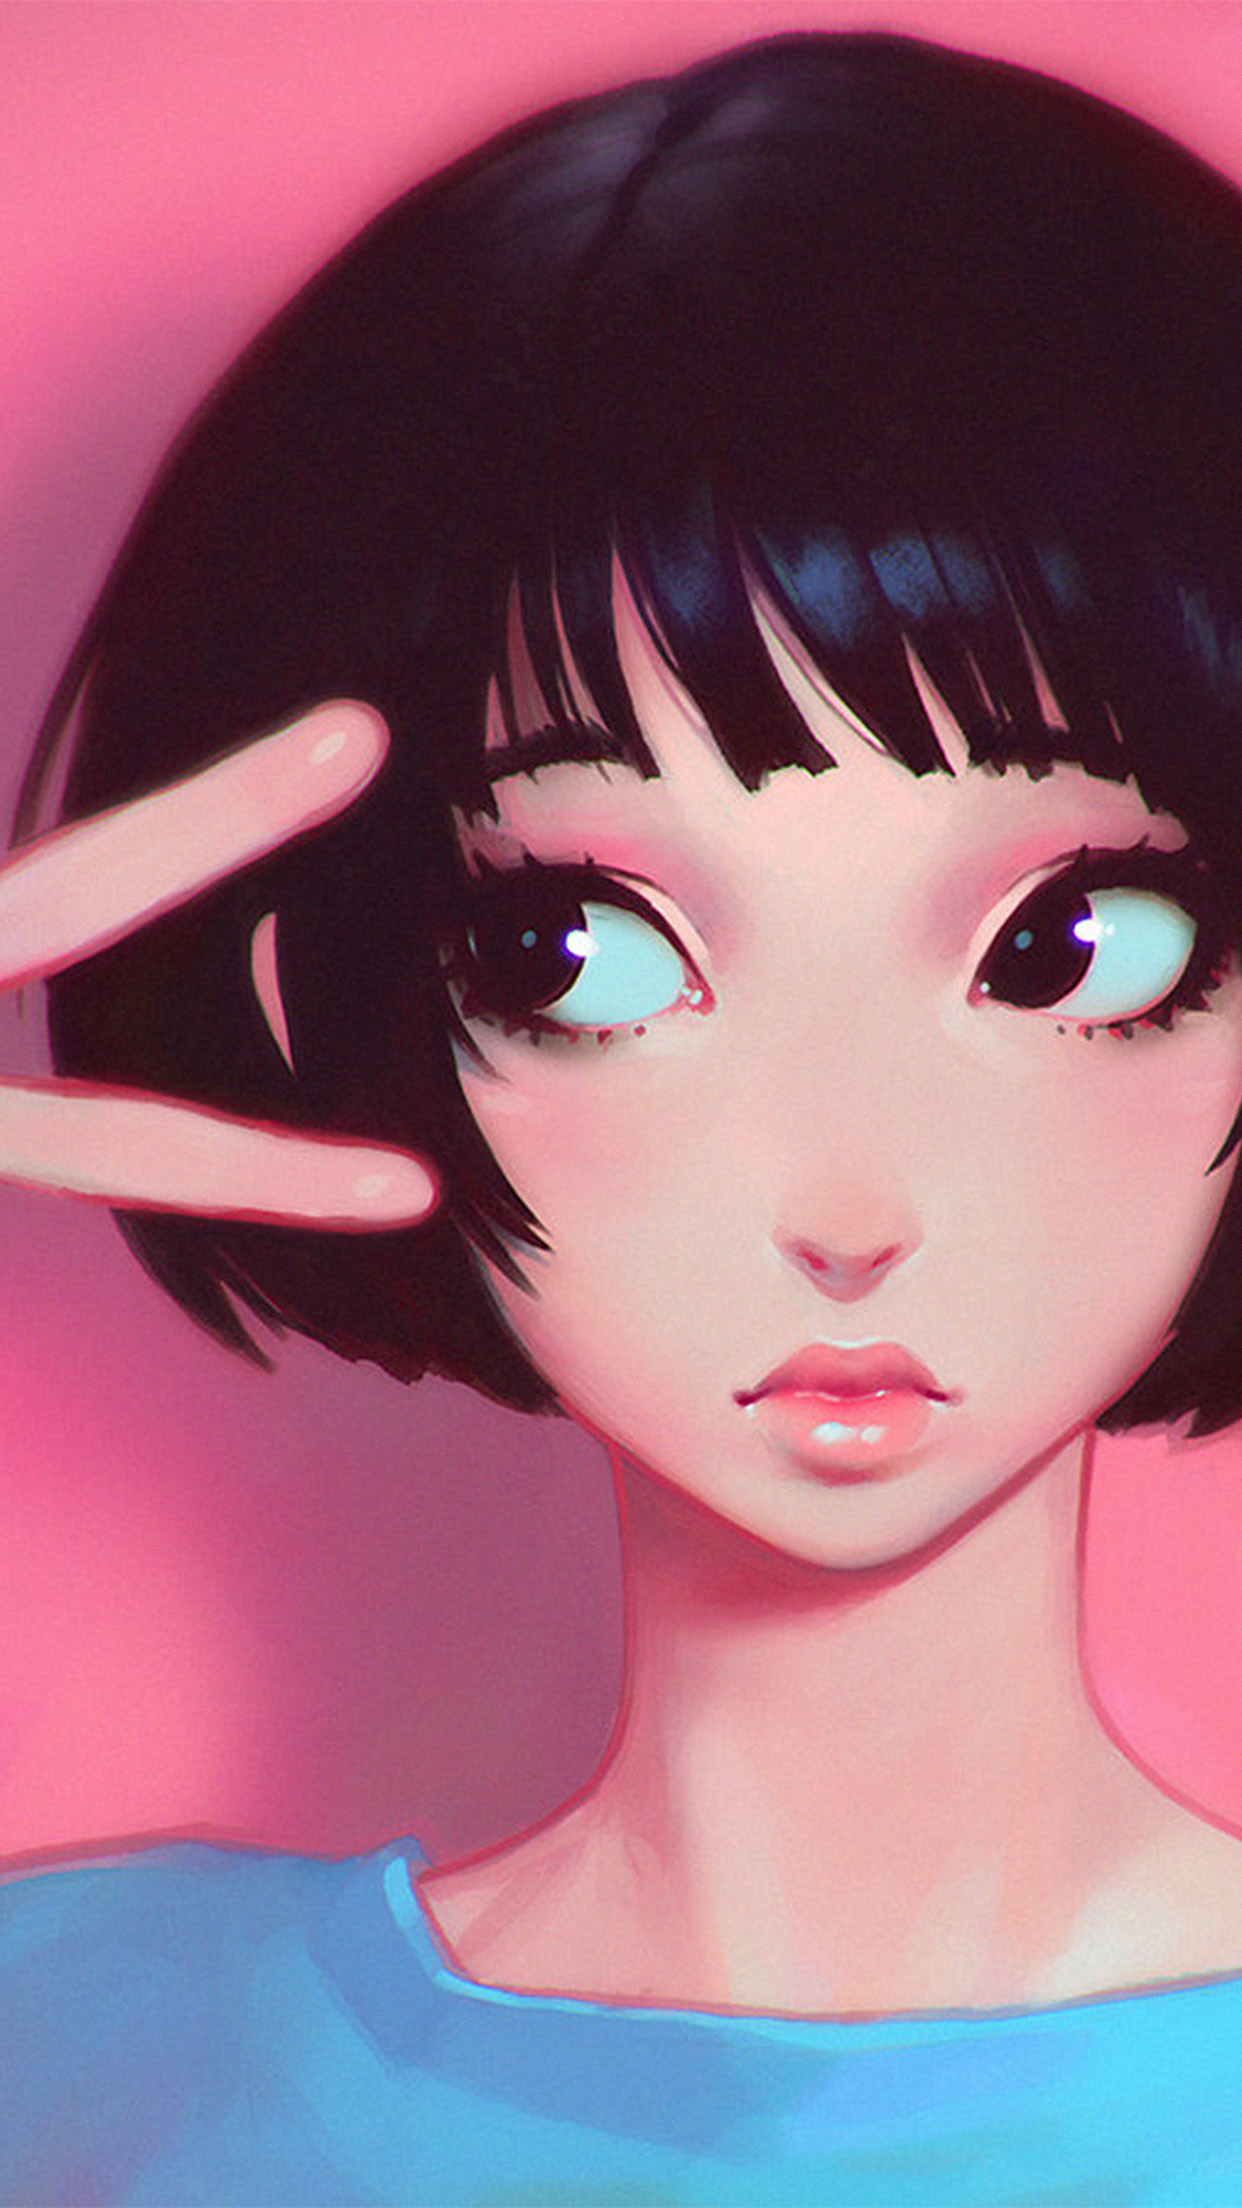 Ay03 Ilya Kuvshinov Pink Girl Illustration Art Iphone